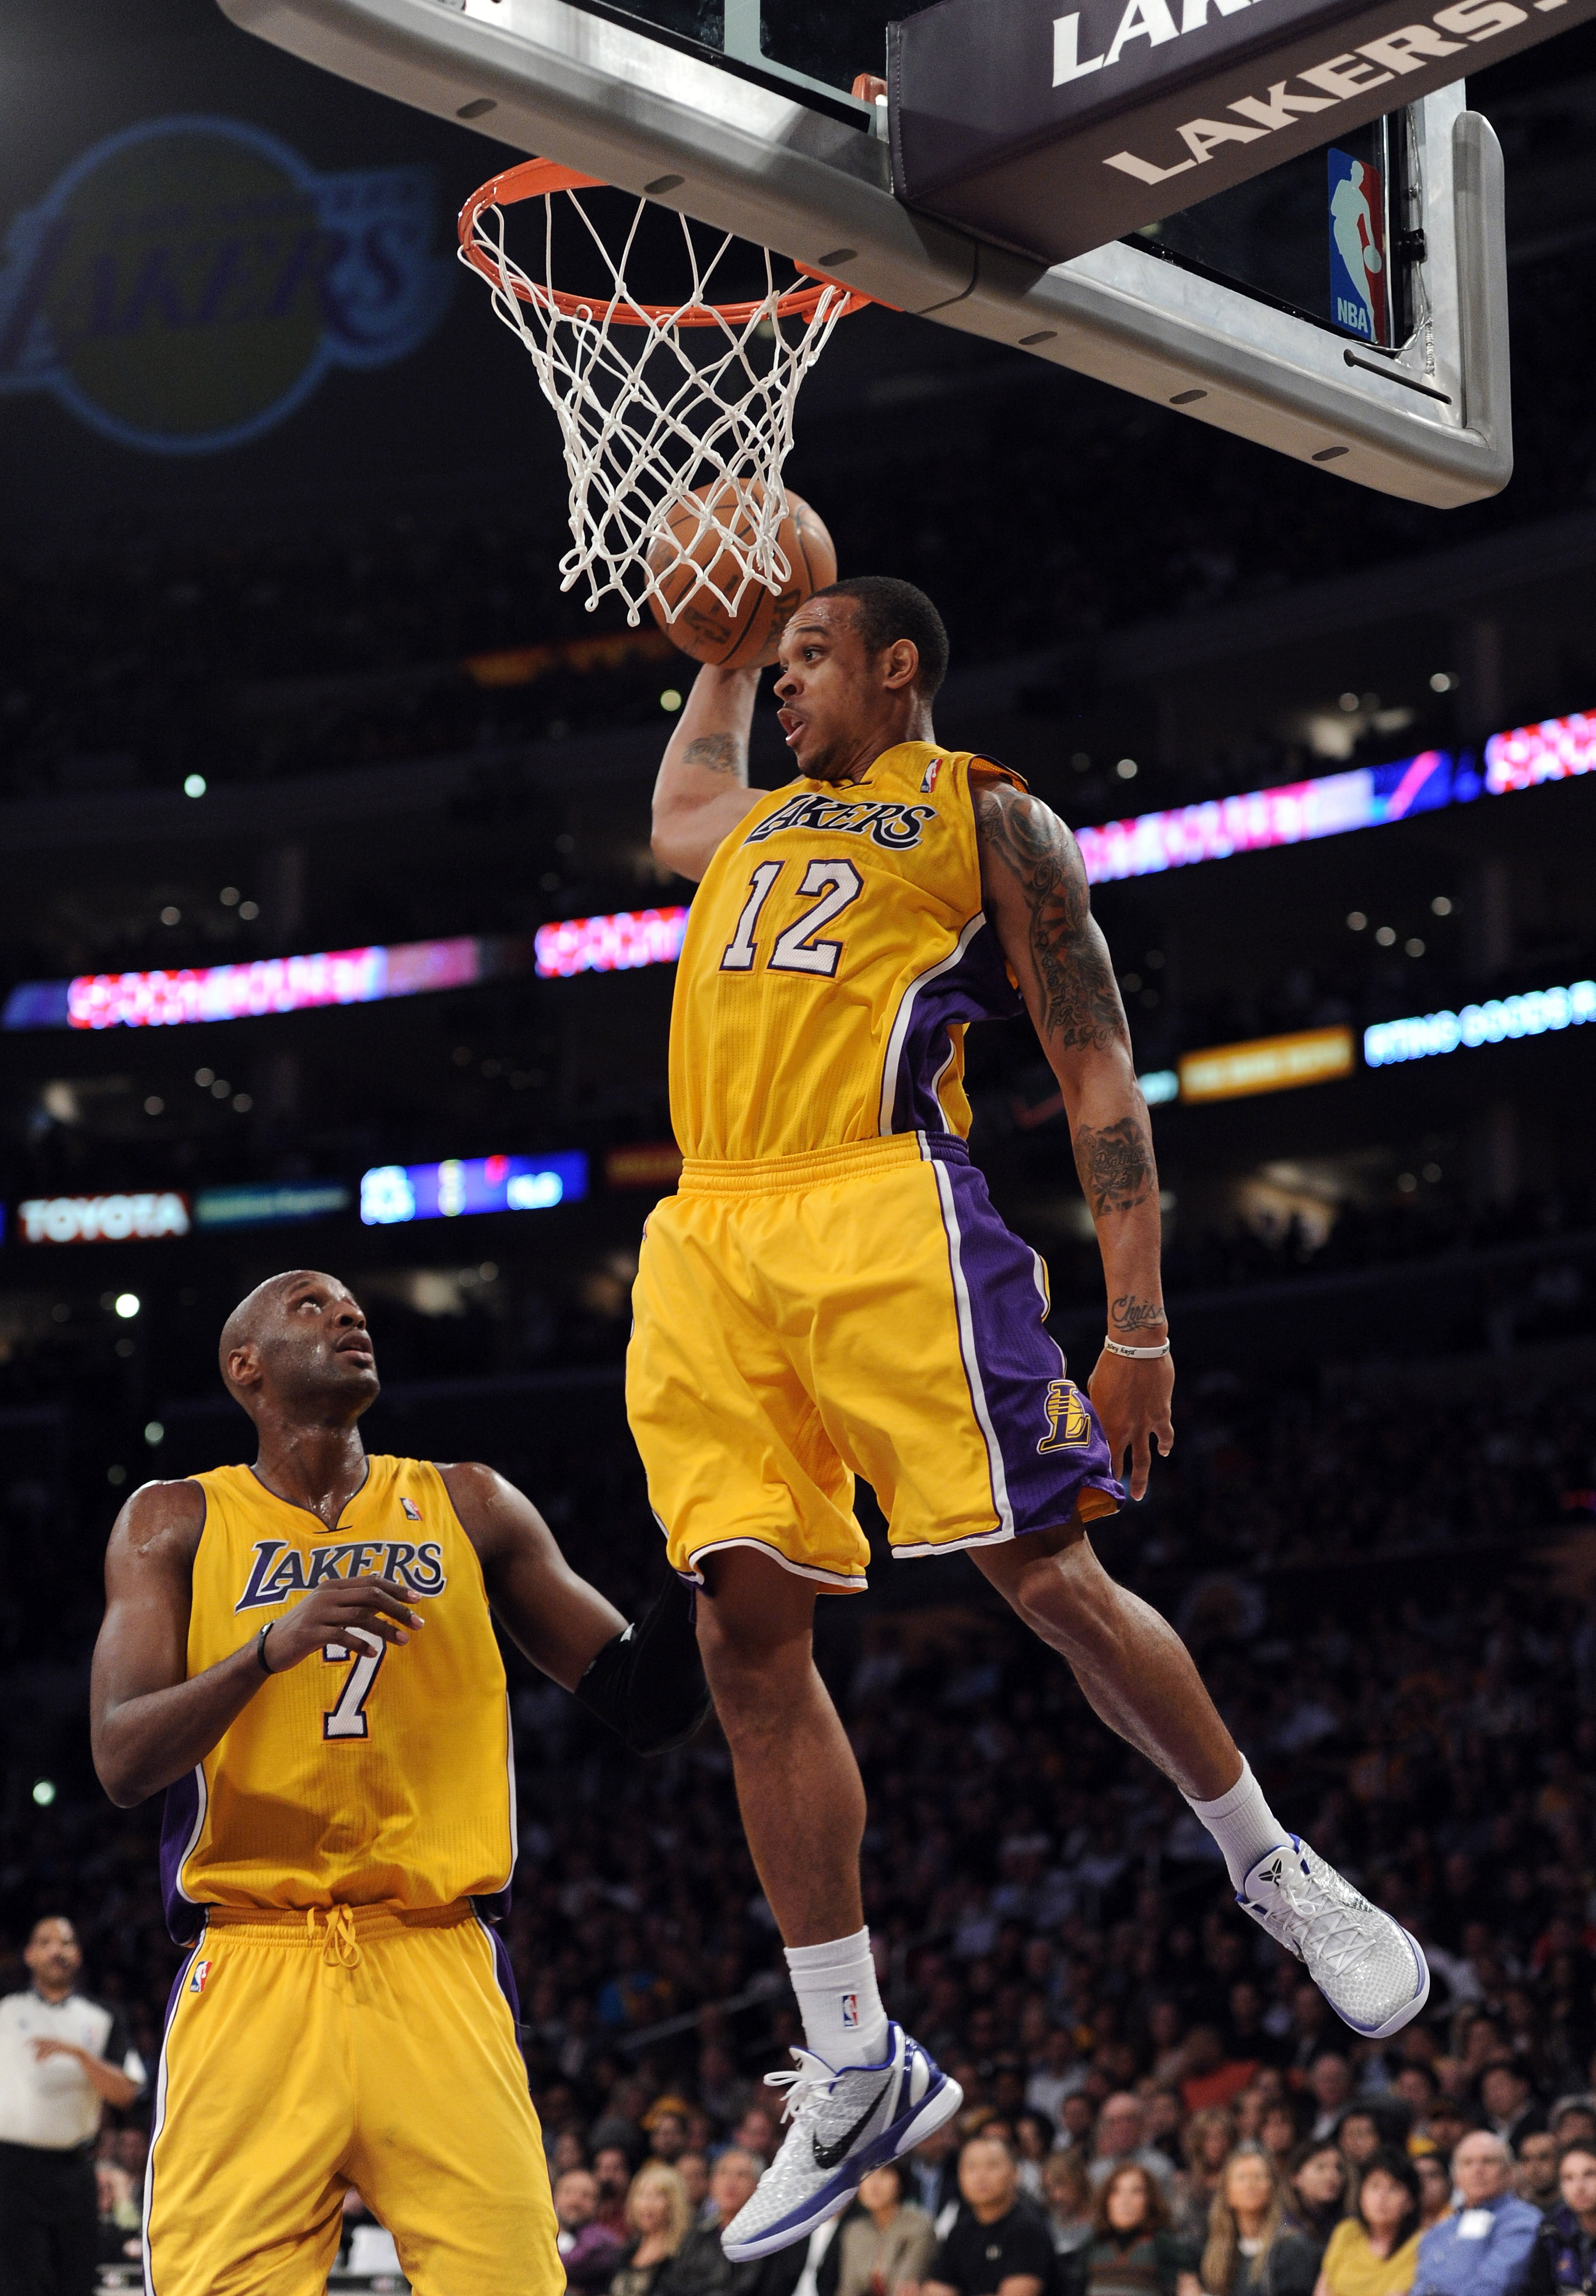 LA Lakers Lamar Odom & Shannon Brown Show Us Their Goods